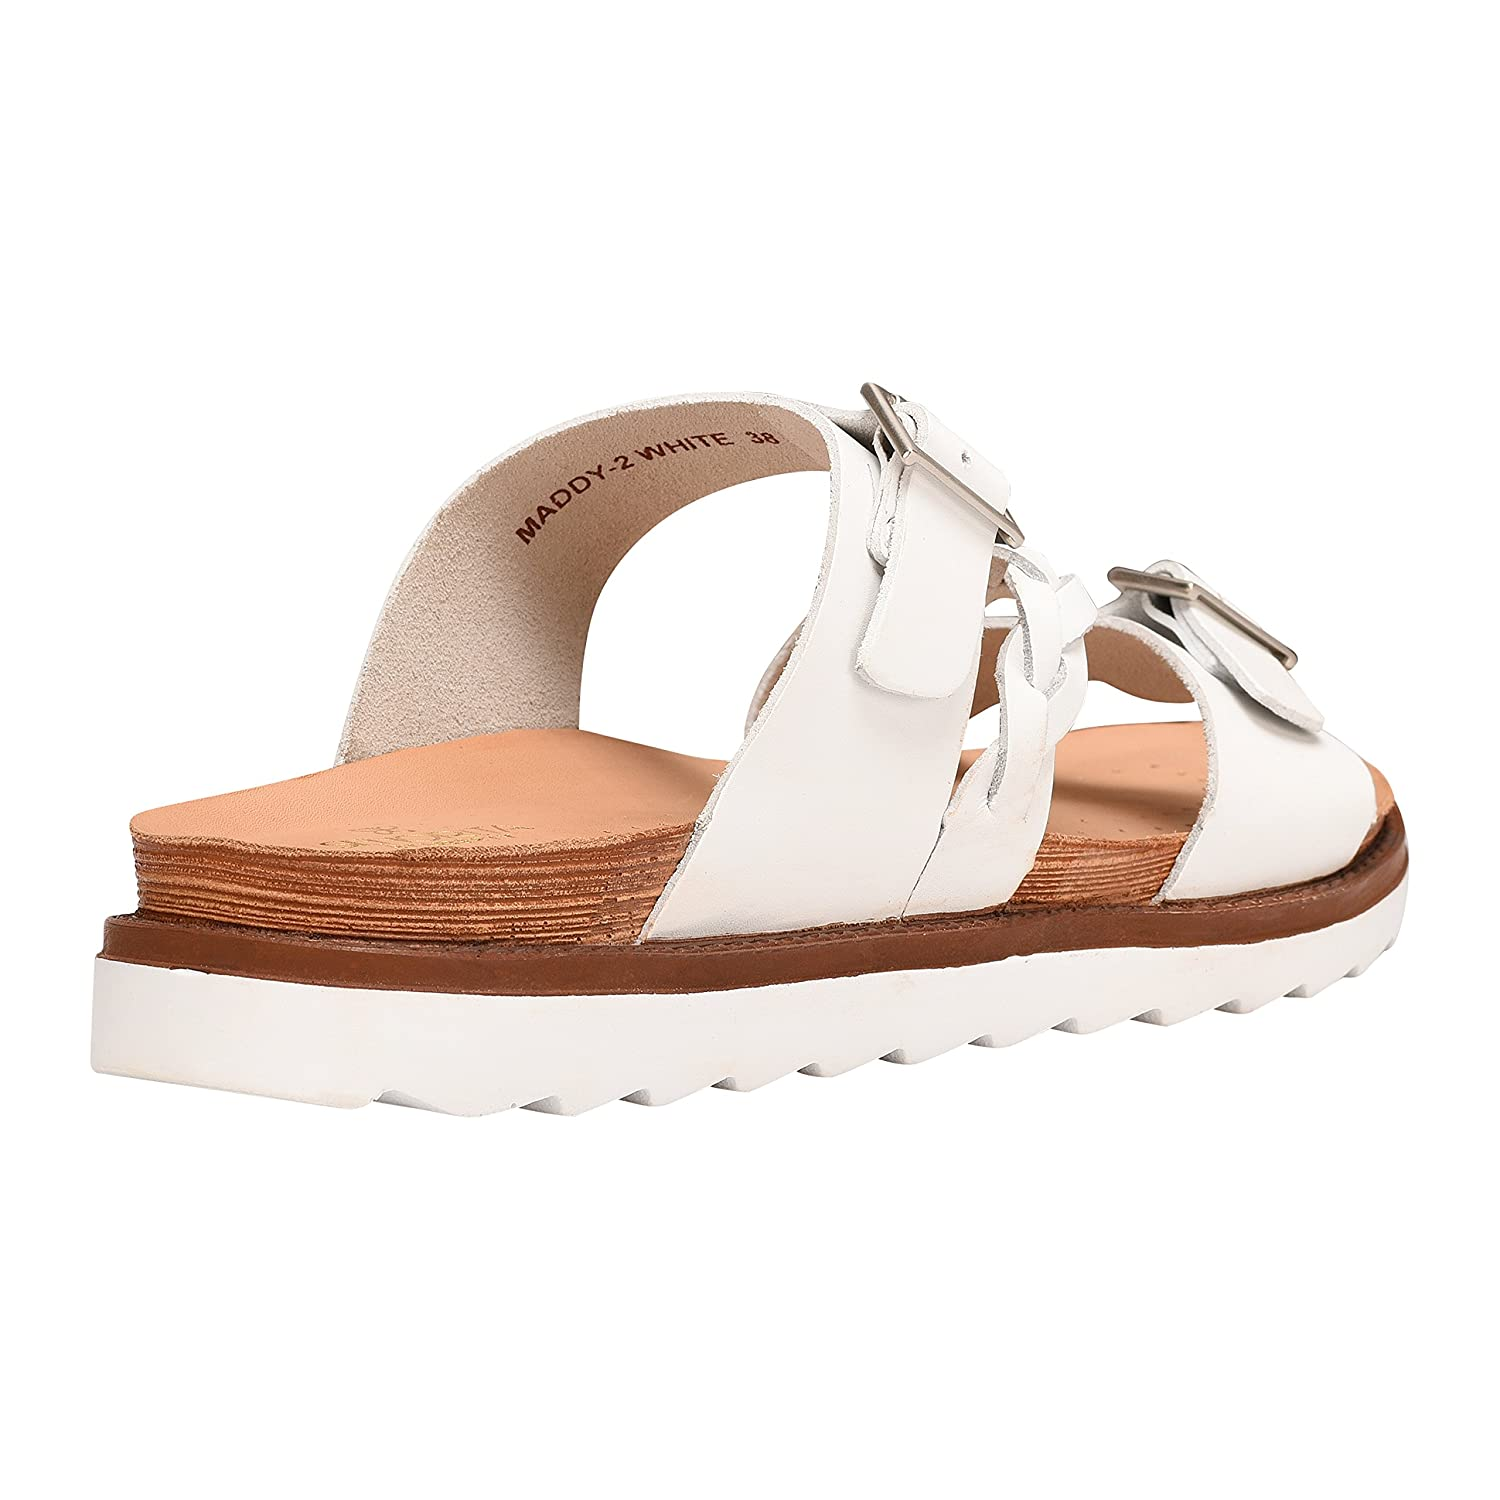 Liberty Women's Leather Slide On Sandals Double Strap Buckle Braided Platforms B07BWJRPK9 10 M US|Pearl White